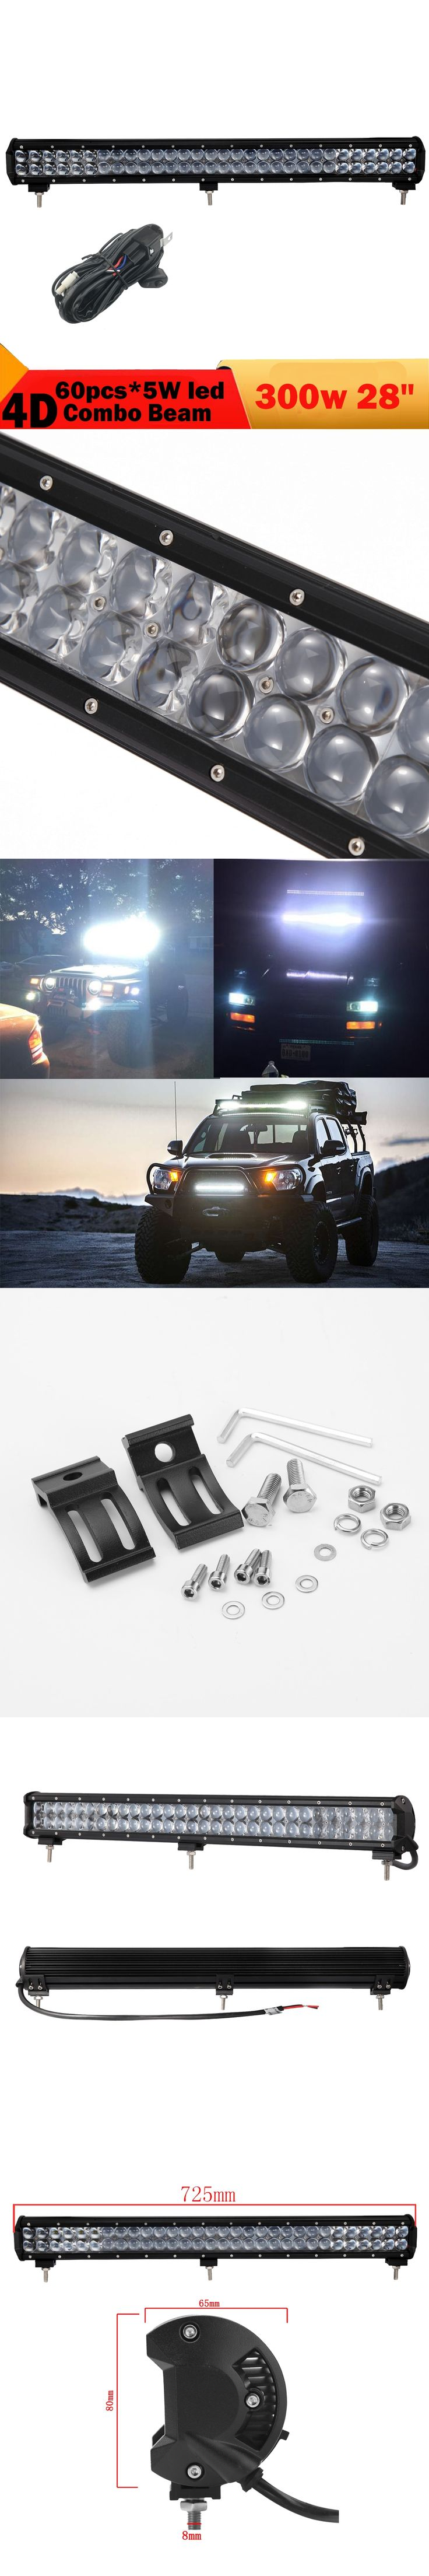 4D 300W Waterproof Offroad Led Light Bar  28 Inch DRL Headlight Driving Fog Lamp For Jeep Toyota Audi Nissan SUV  12V 24V 3000LM